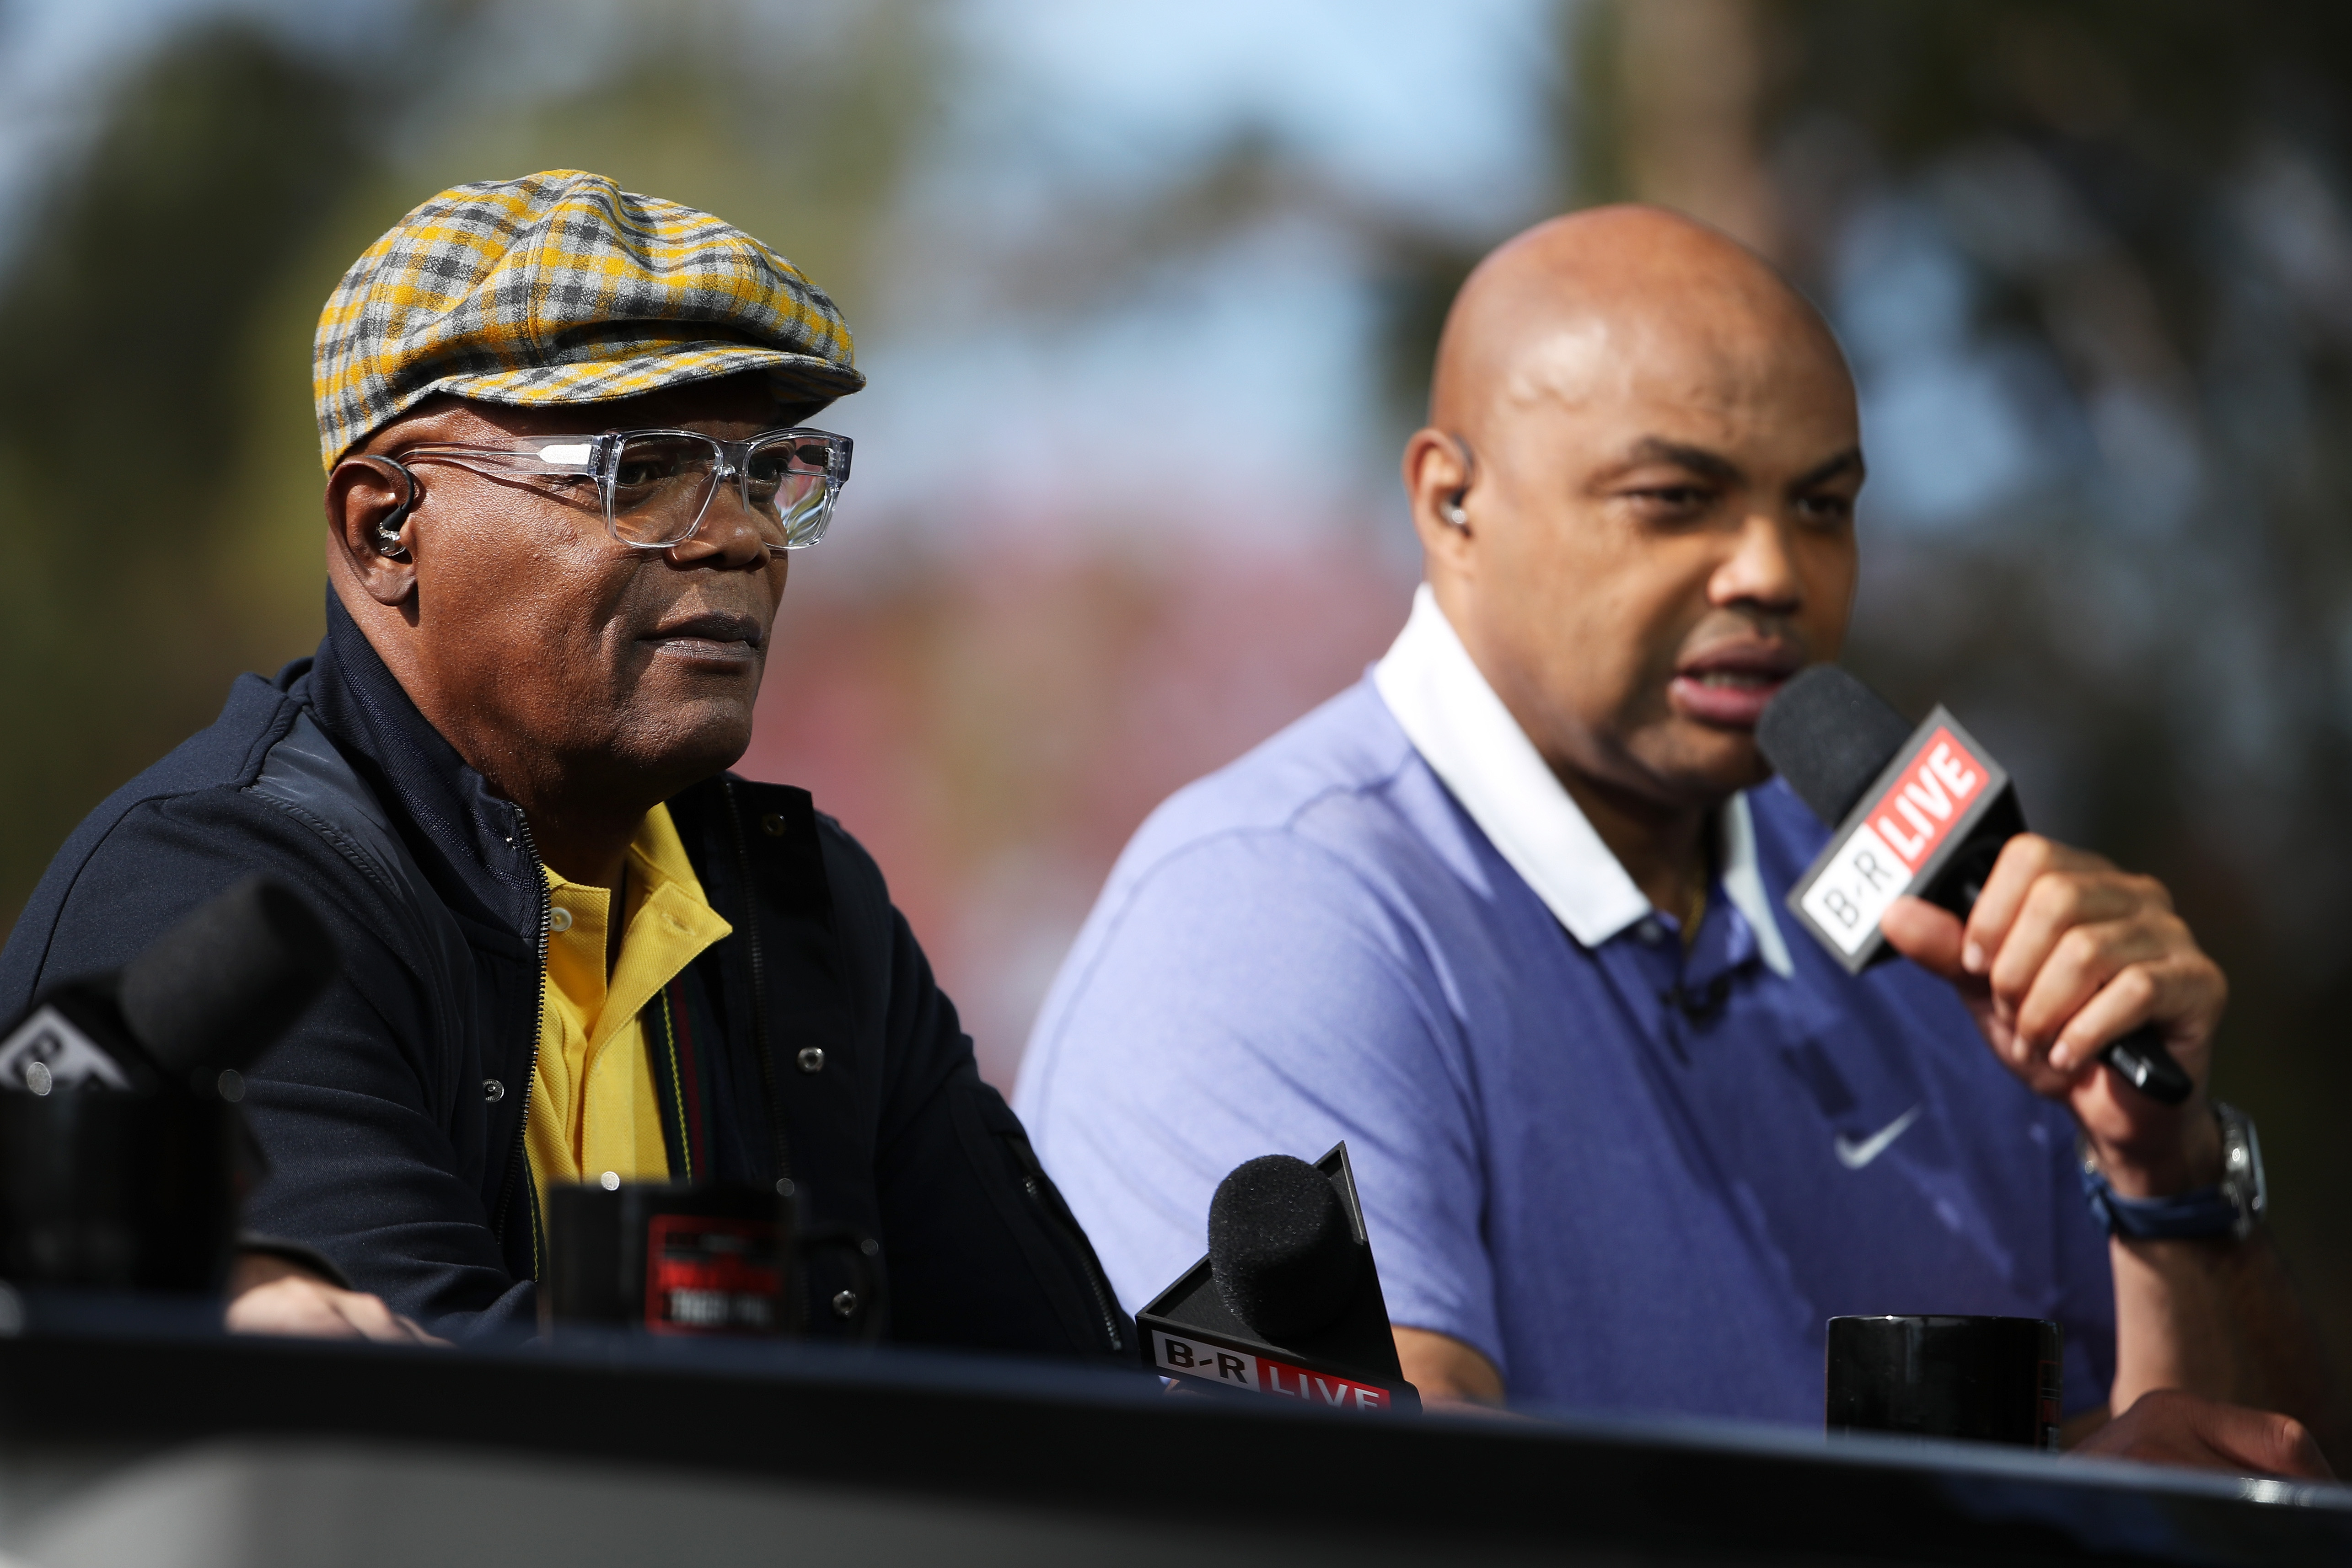 LAS VEGAS, NV - NOVEMBER 23: Commentators Samuel L. Jackson and Charles Barkley look on prior to The Match: Tiger vs Phil at Shadow Creek Golf Course on November 23, 2018 in Las Vegas, Nevada. (Photo by Christian Petersen/Getty Images for The Match)